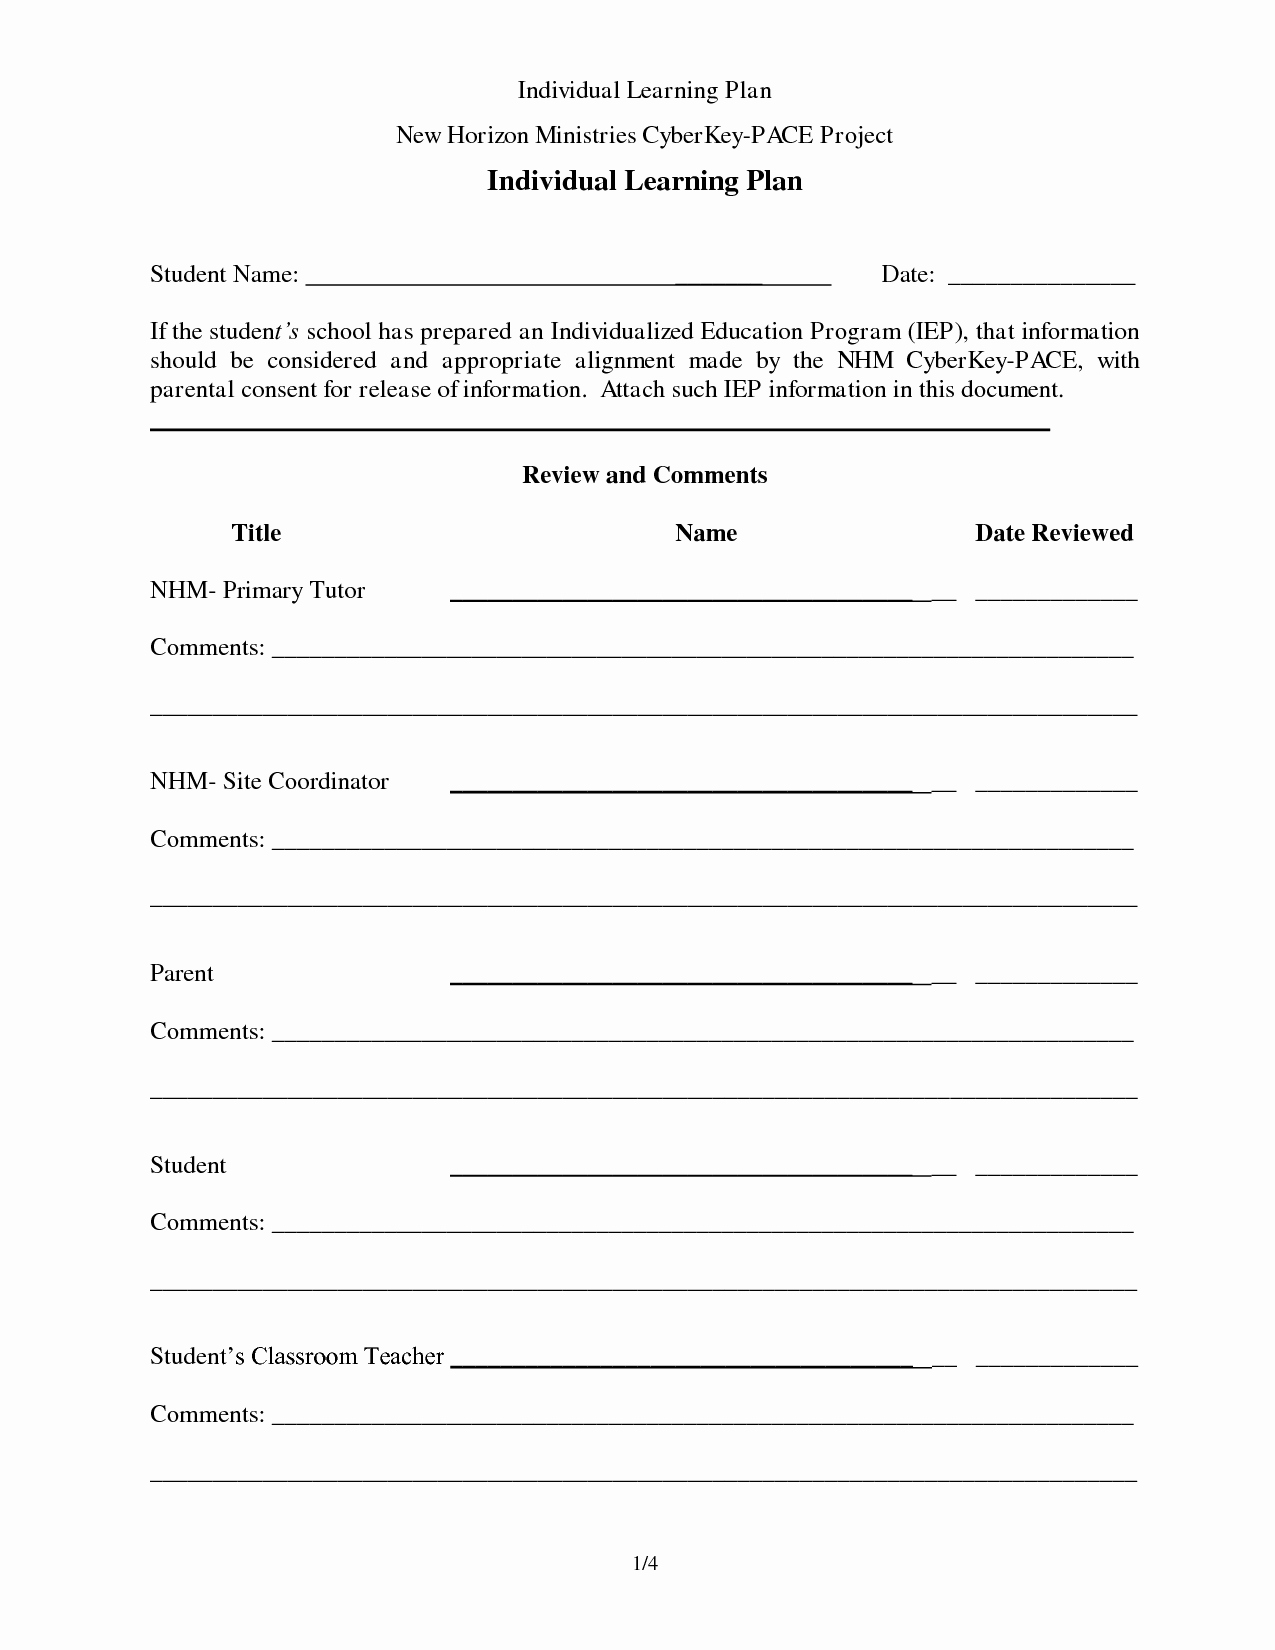 Individual Learning Plan Template New Individual Learning Plan Sample Success